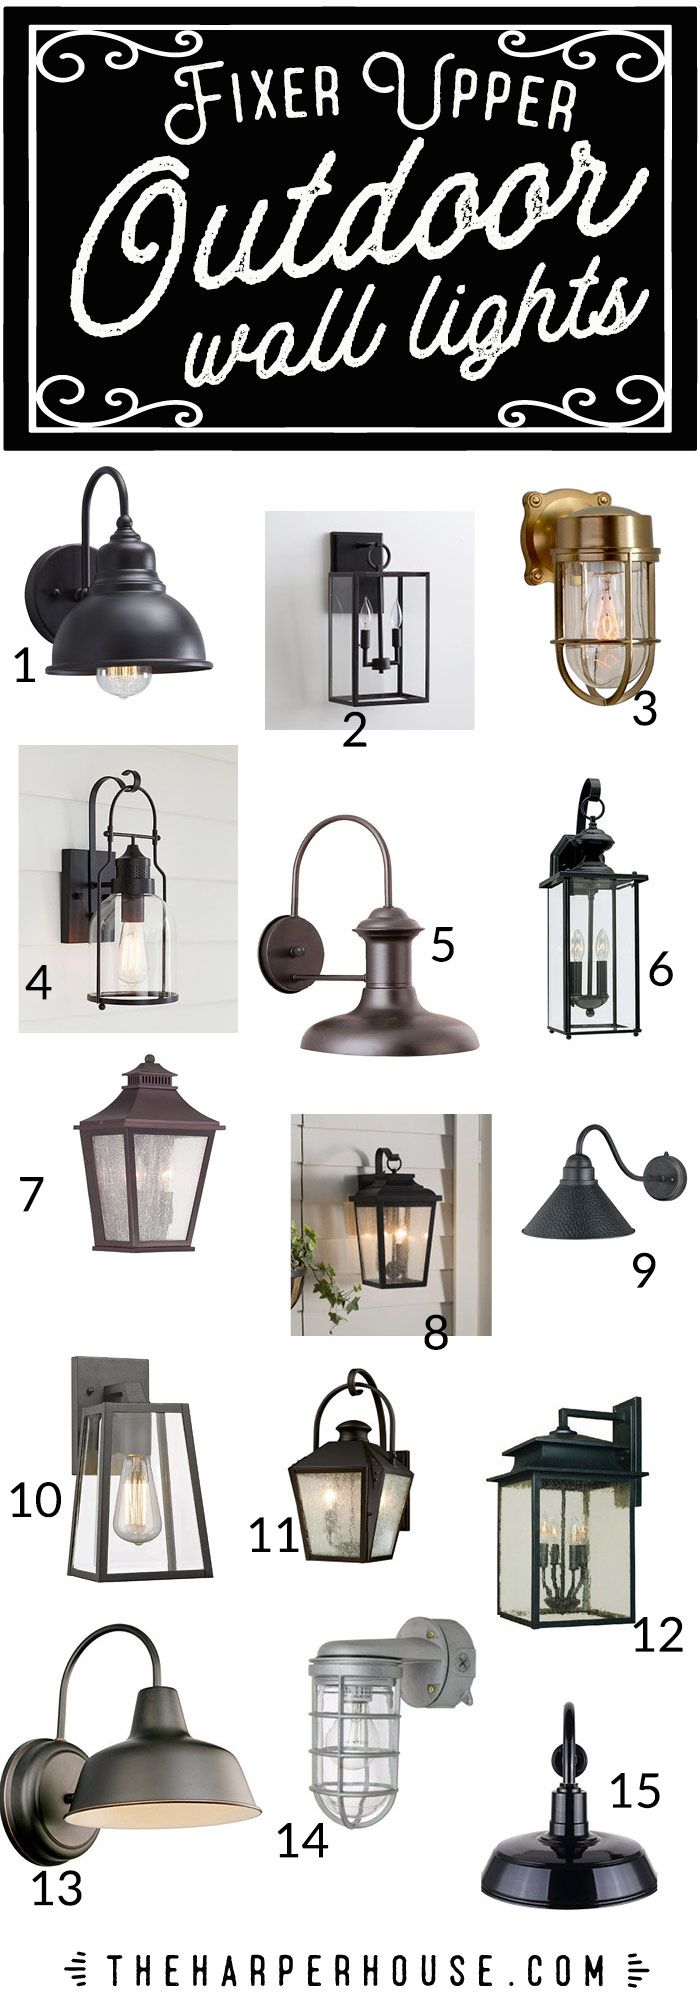 Outdoor Wall Lights – Fixer Upper Style | The Harper House